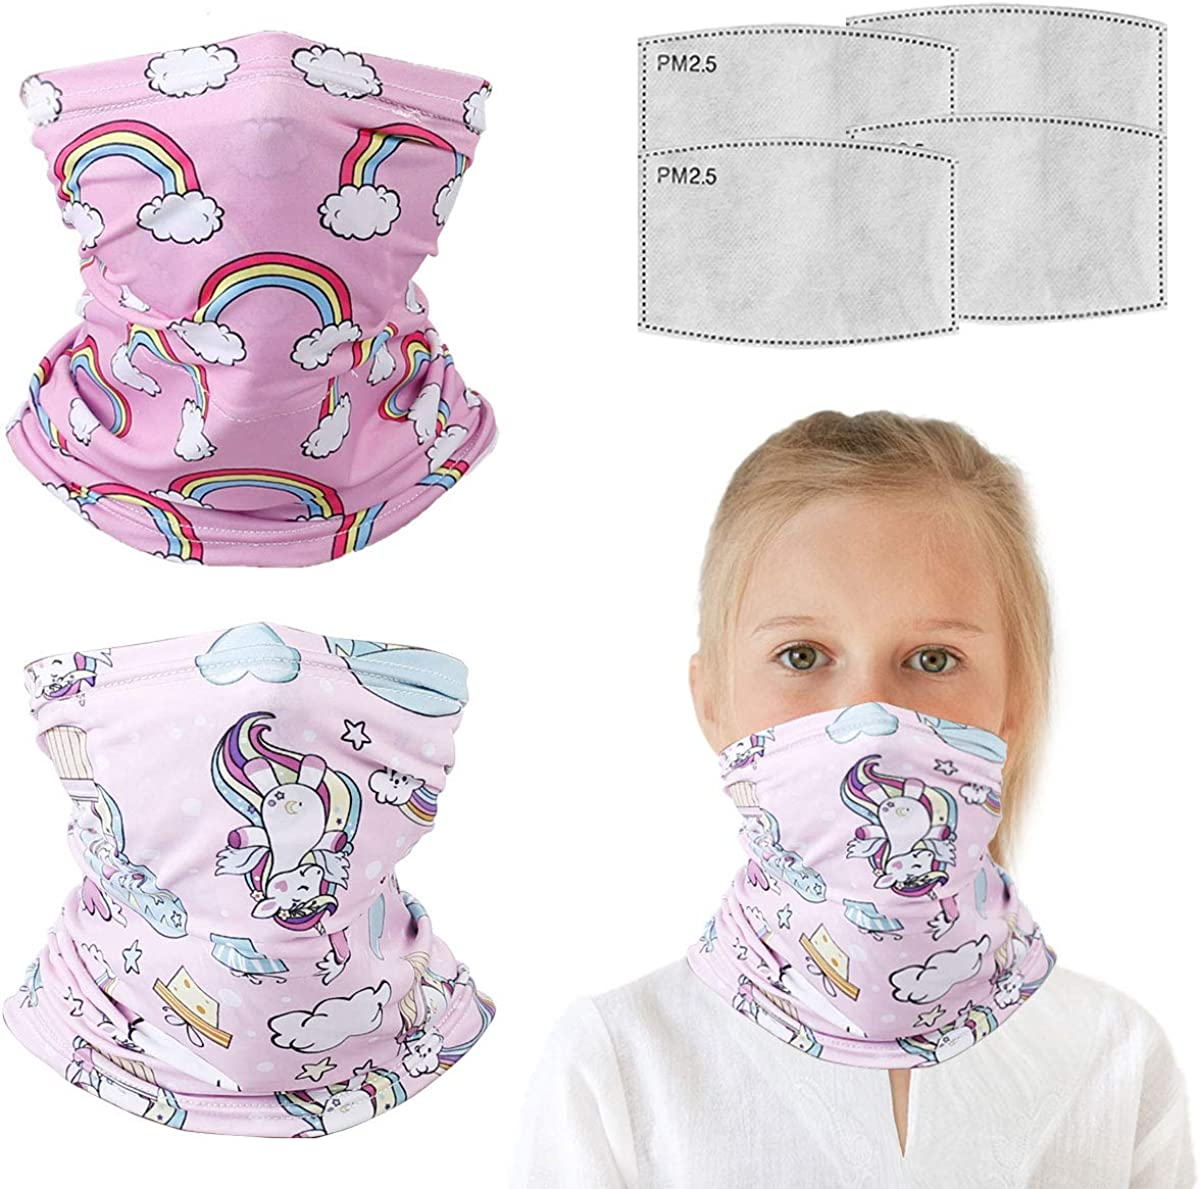 6 Pcs 6-14 Years Kids Balaclava Neck Gaiter With Filters Bandanas, Half Face Protective Masks. Gifts For Kids.